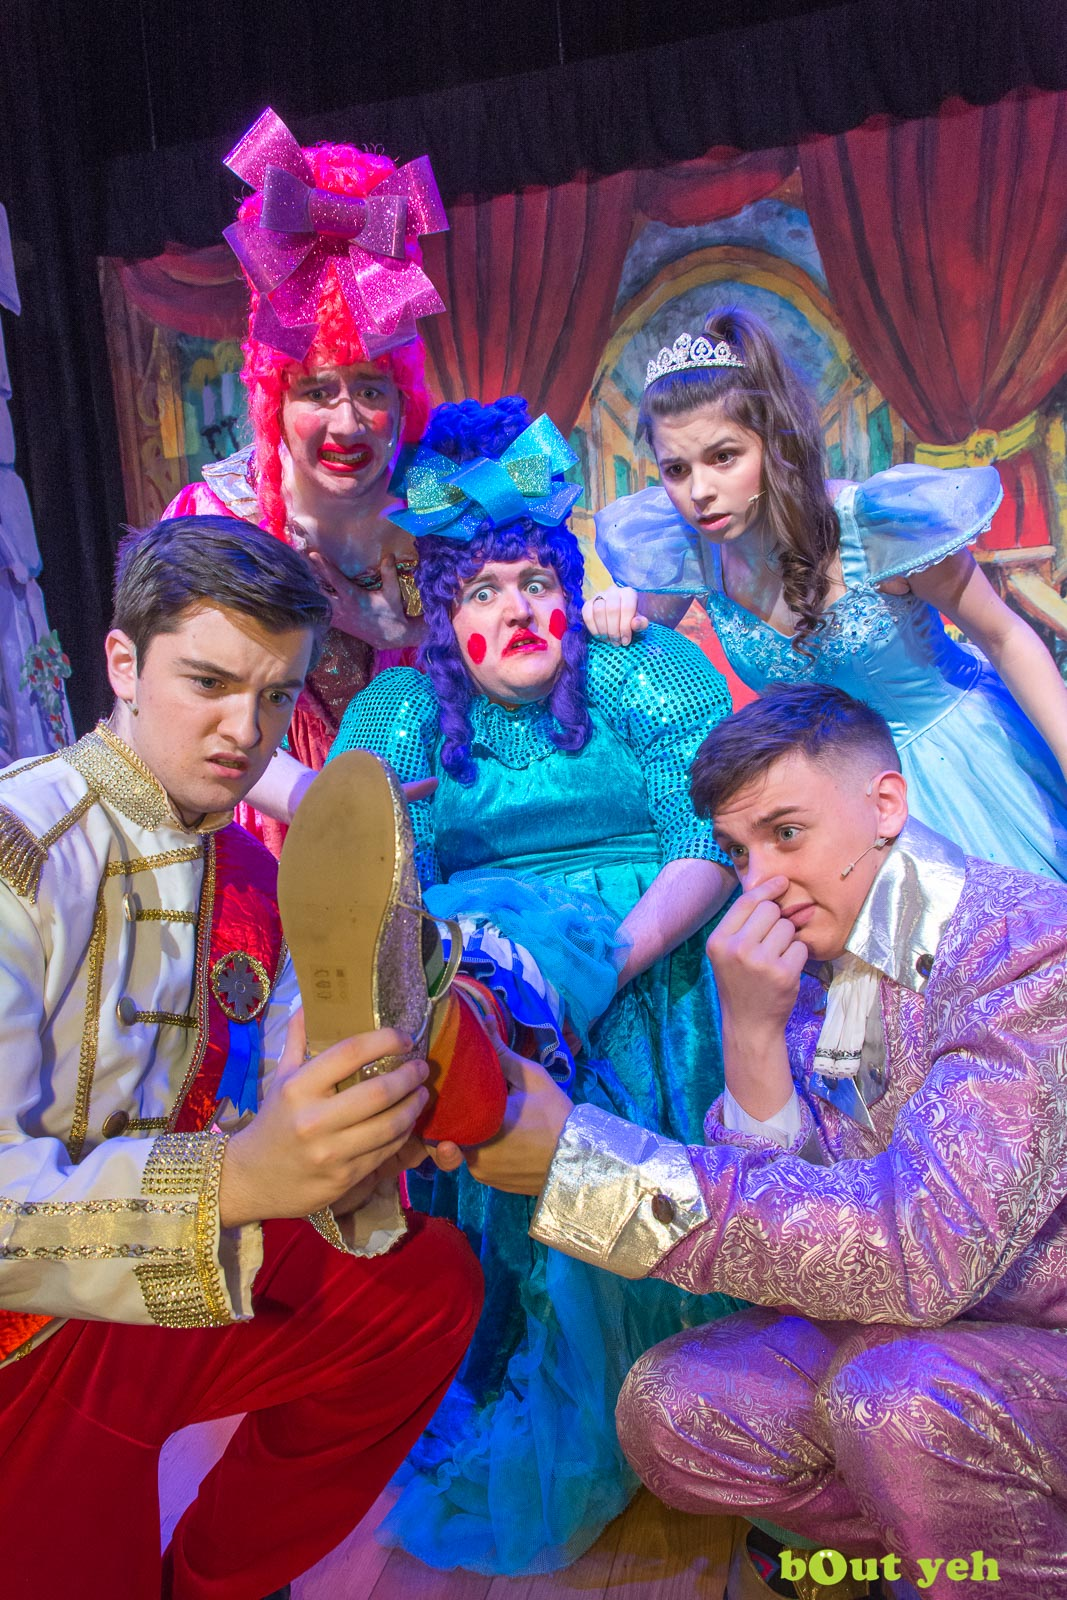 PR photographers Belfast portfolio photo 9971 of Cinderella pantomime at the Old Courthouse Theatre Antrim - Bout Yeh photography and video production services Belfast, Northern Ireland